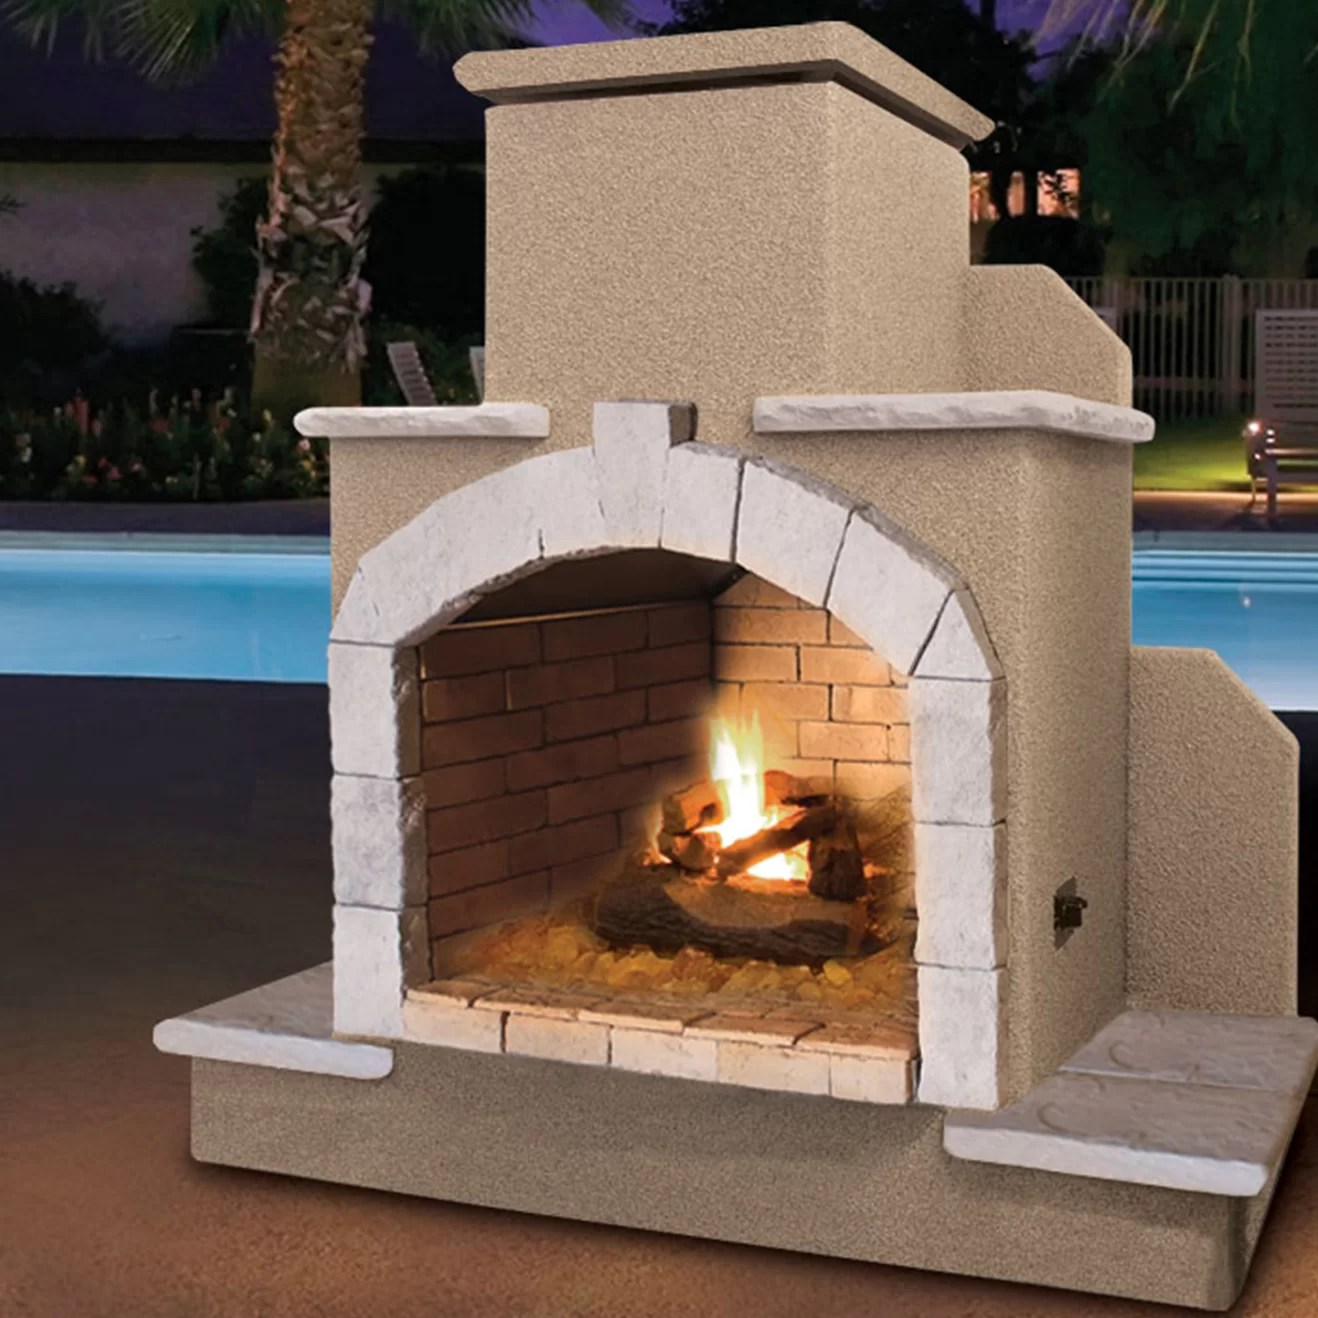 Cal Flame Steel Gas Outdoor Fireplace & Reviews | Wayfair on Quillen Steel Outdoor Fireplace id=76630